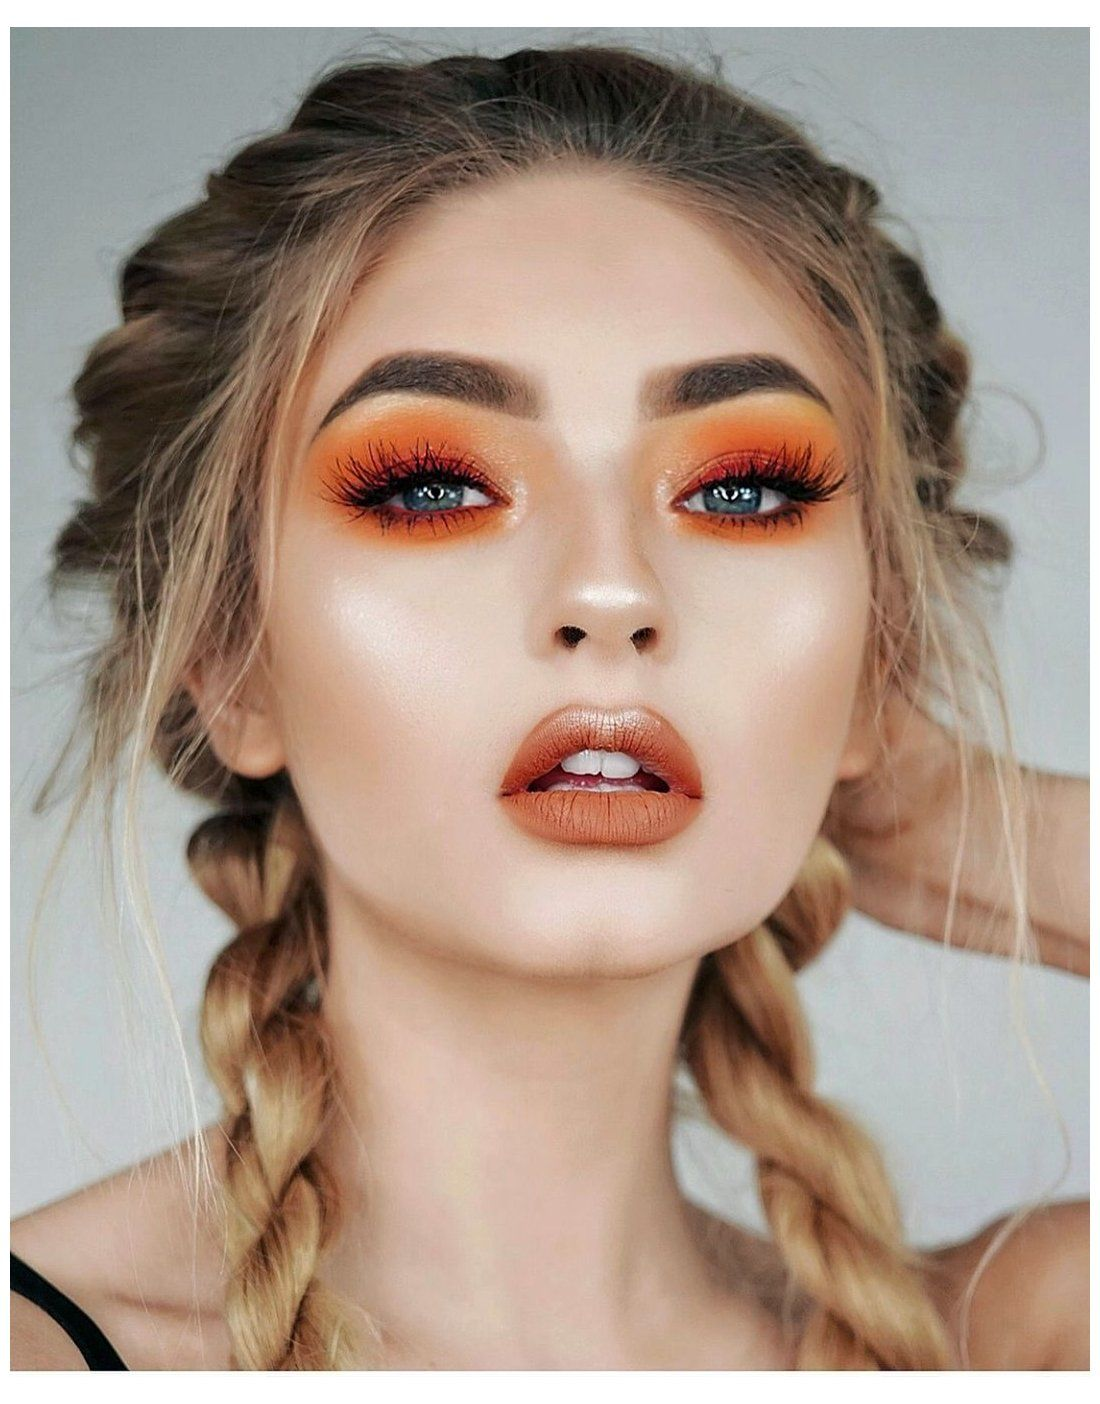 7 Glowy Look Of Prom Night Makeup That Will Make You Shine In Summer Prom Night Makeup Is Another Important Fact In 2020 Orange Eye Makeup Orange Eyeshadow Hair Makeup